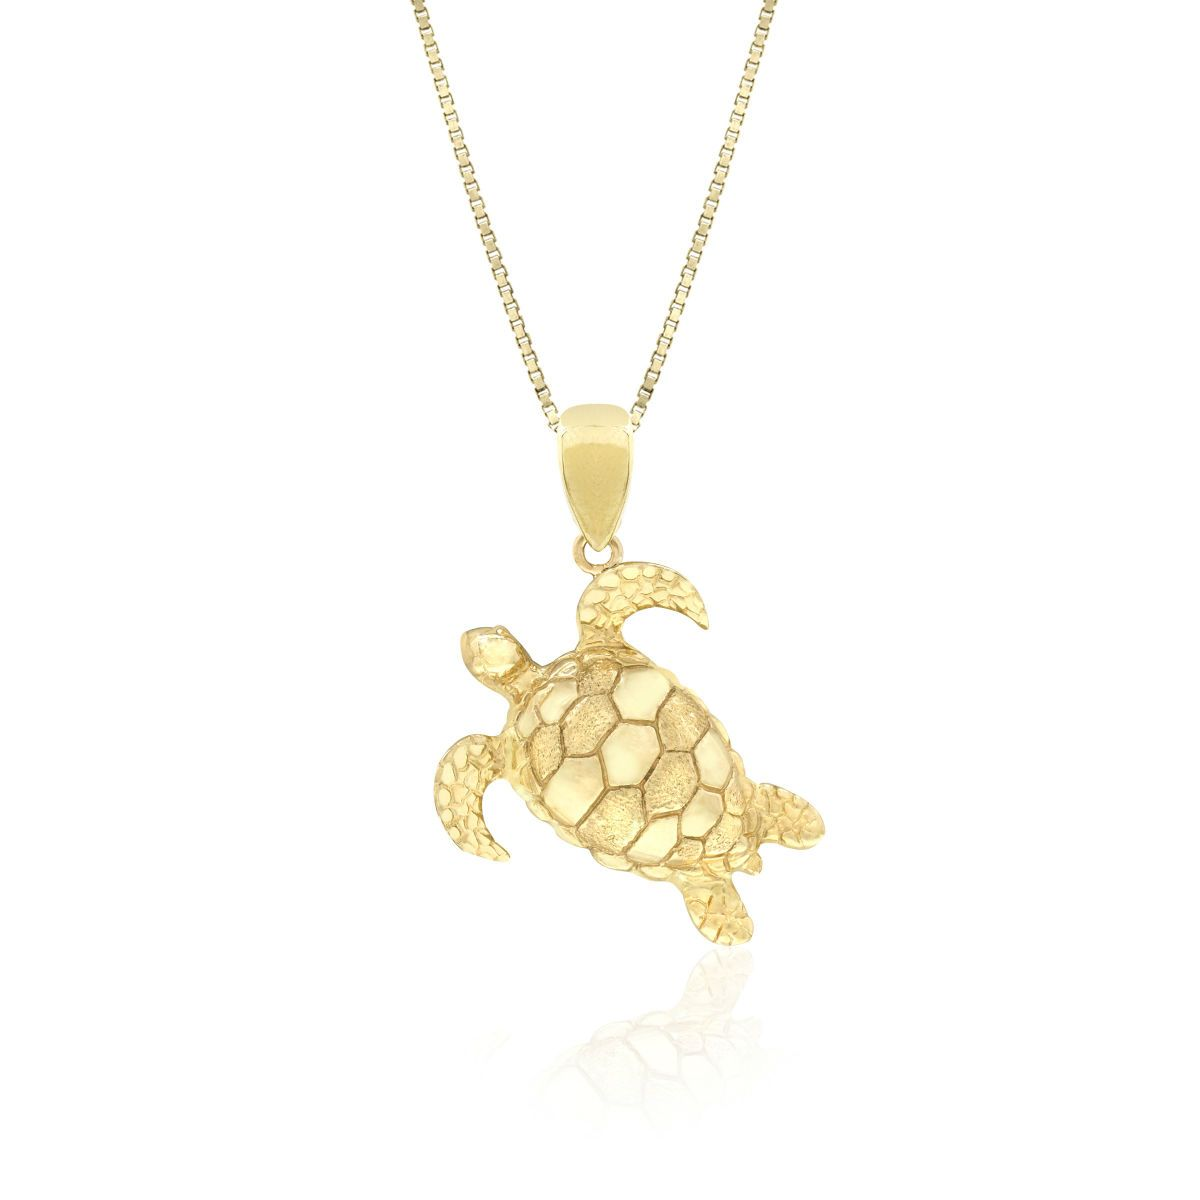 Honu pendant 14k gold 20mm high approx 34 17mm high honu pendant 14k gold 20mm high approx 34 aloadofball Image collections